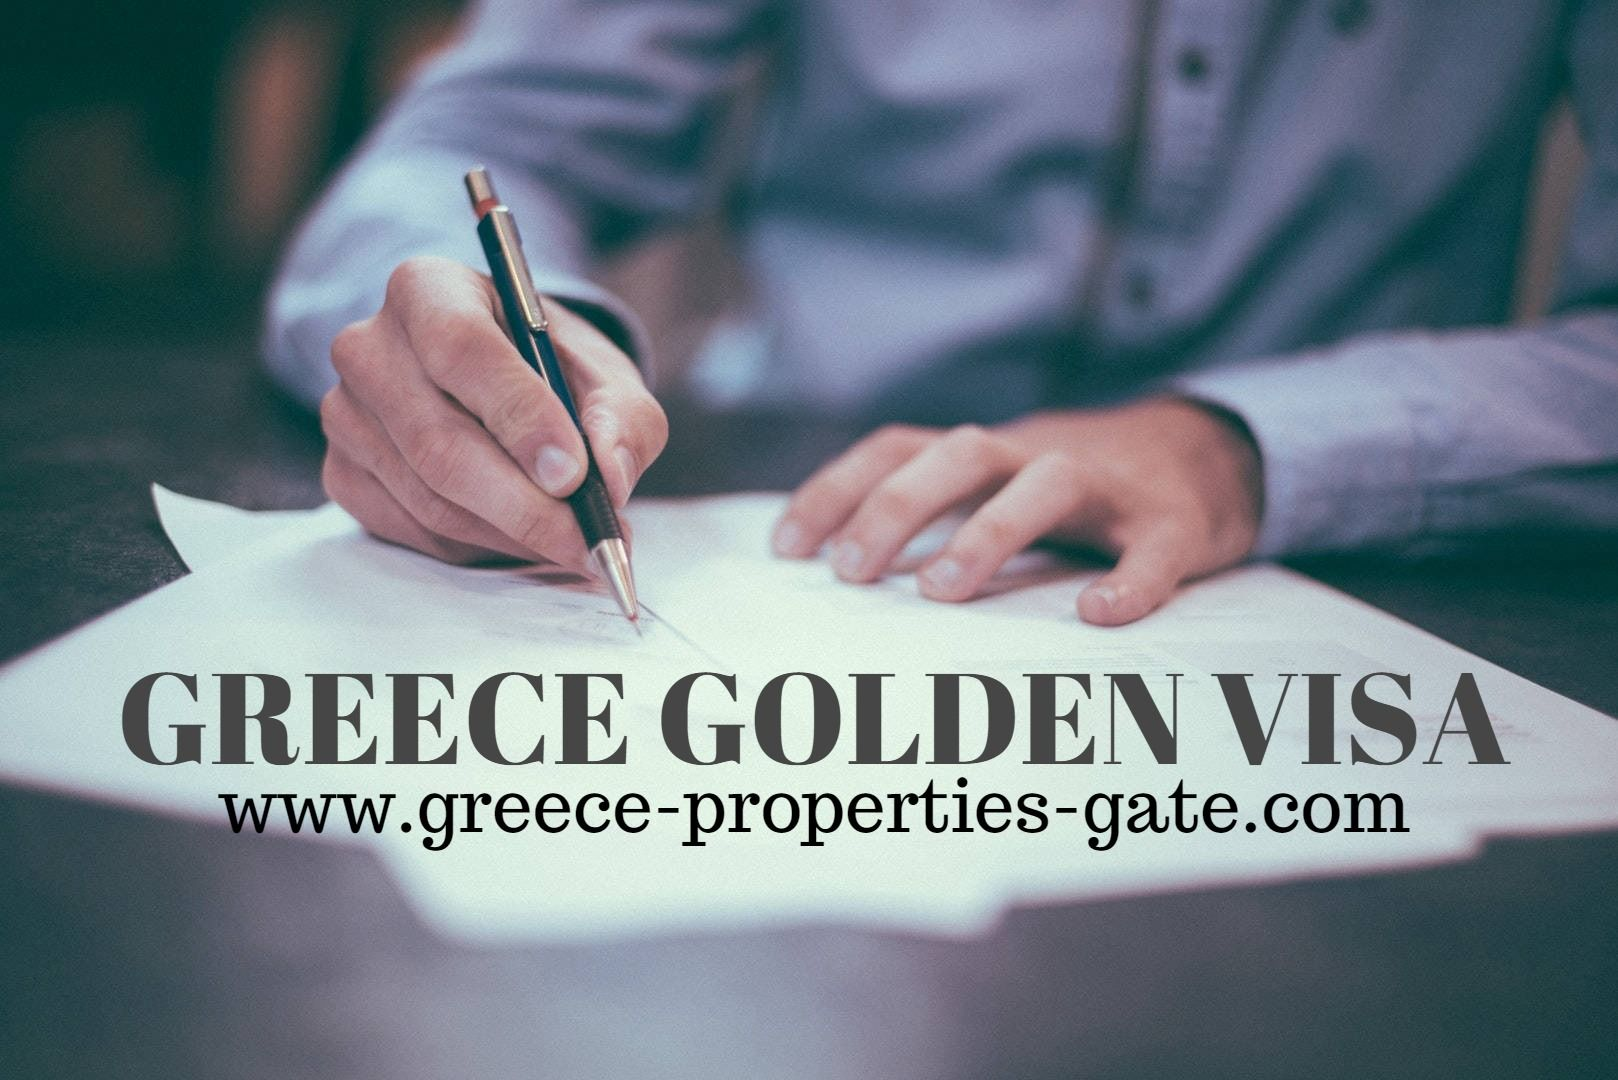 Greek Golden Visa offers your family the freedom to live